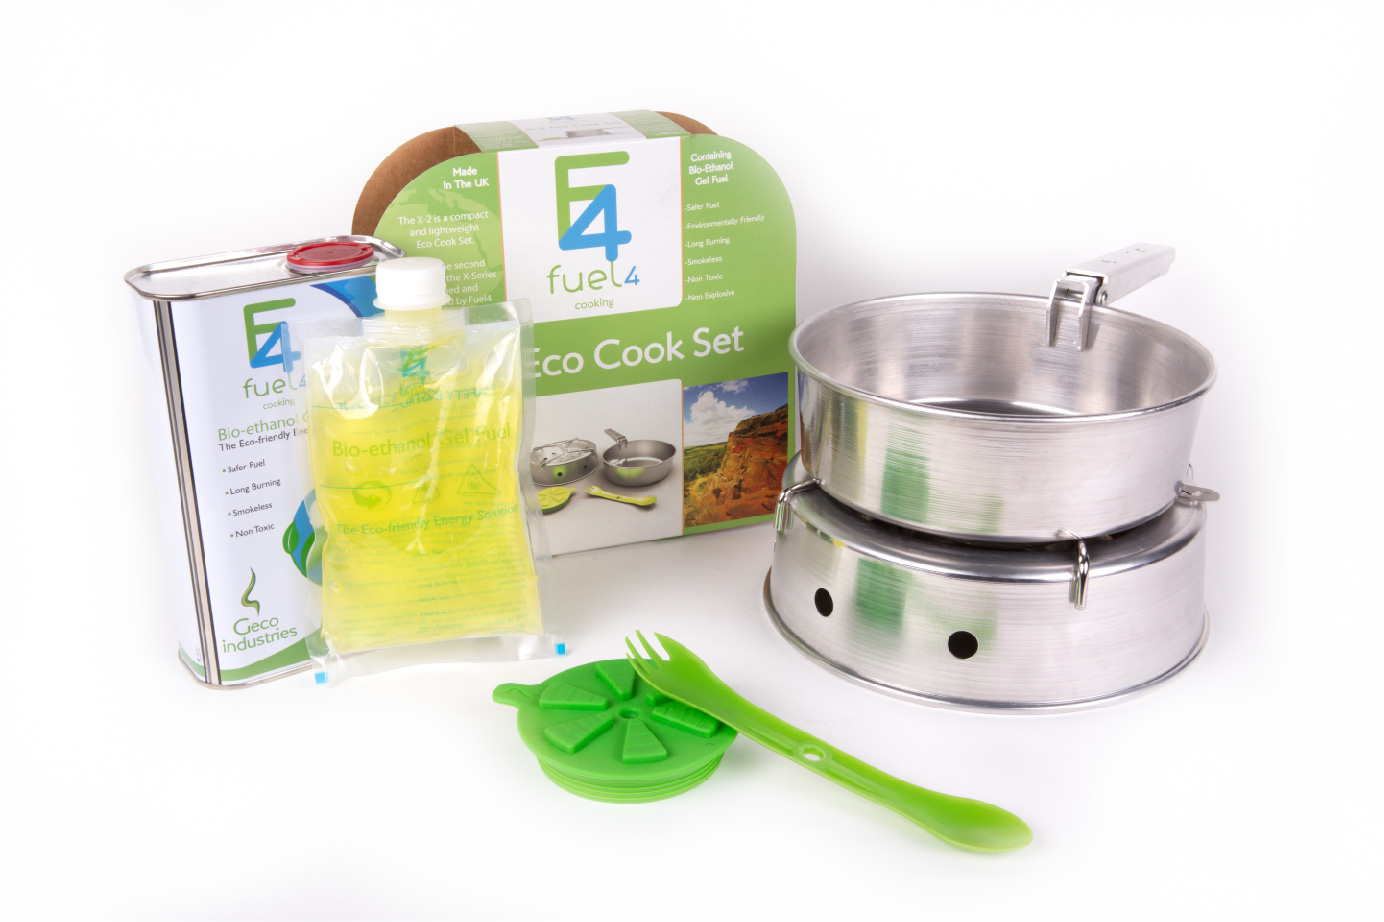 Fuel4 X-2 Eco Cook Kit